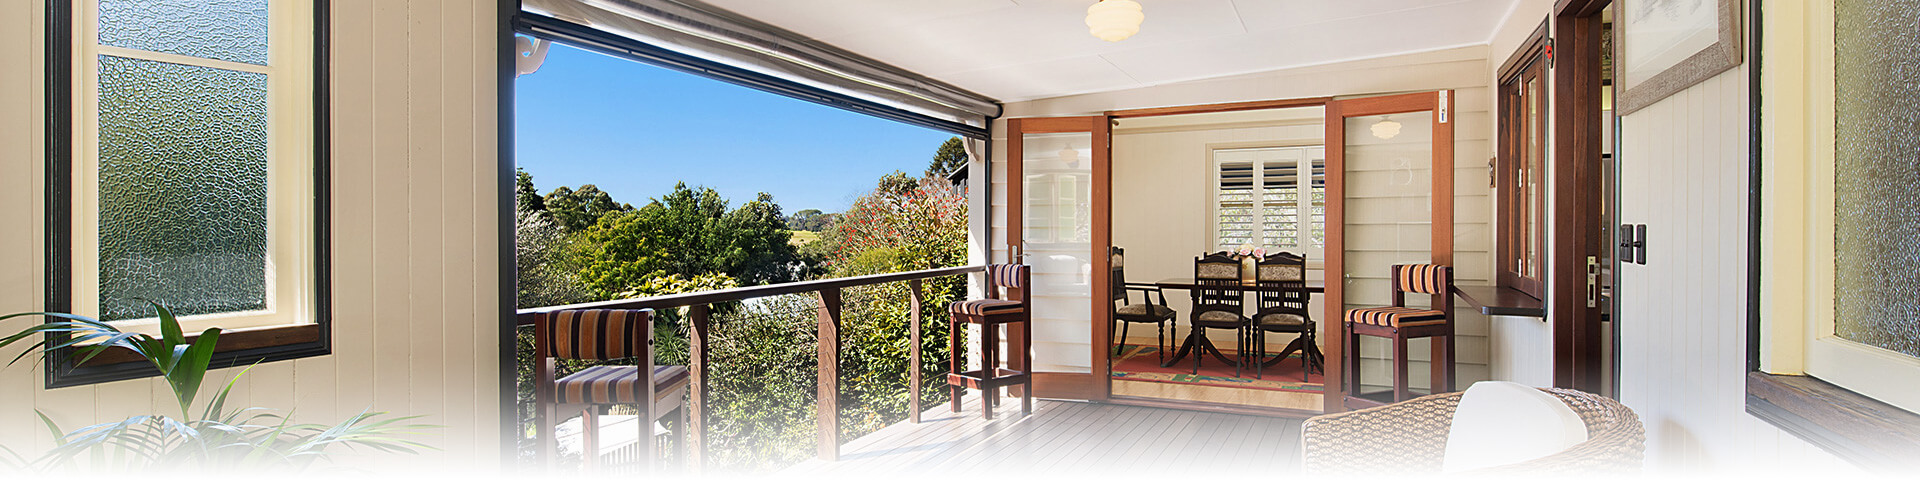 The Guesthouse verandah and Maleny view